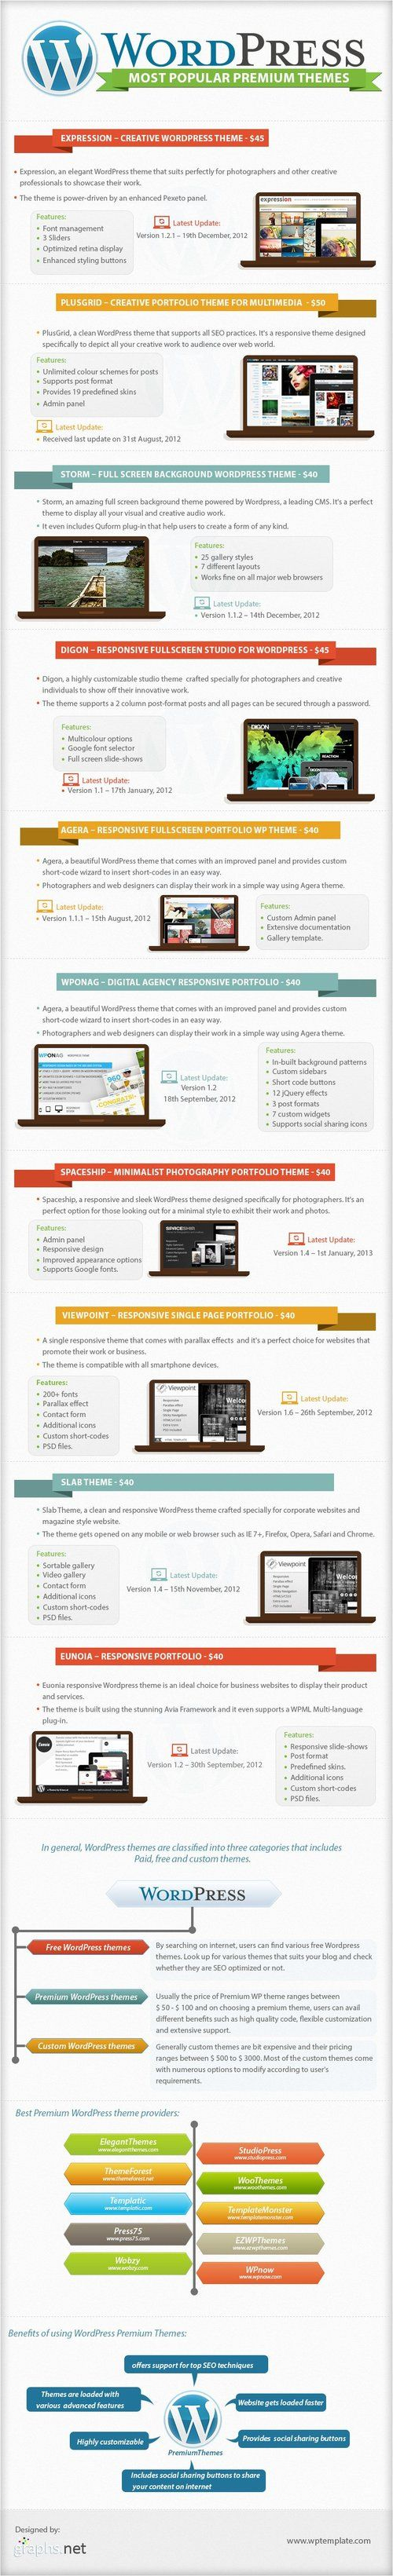 Popular WordPress Premium Themes infographic